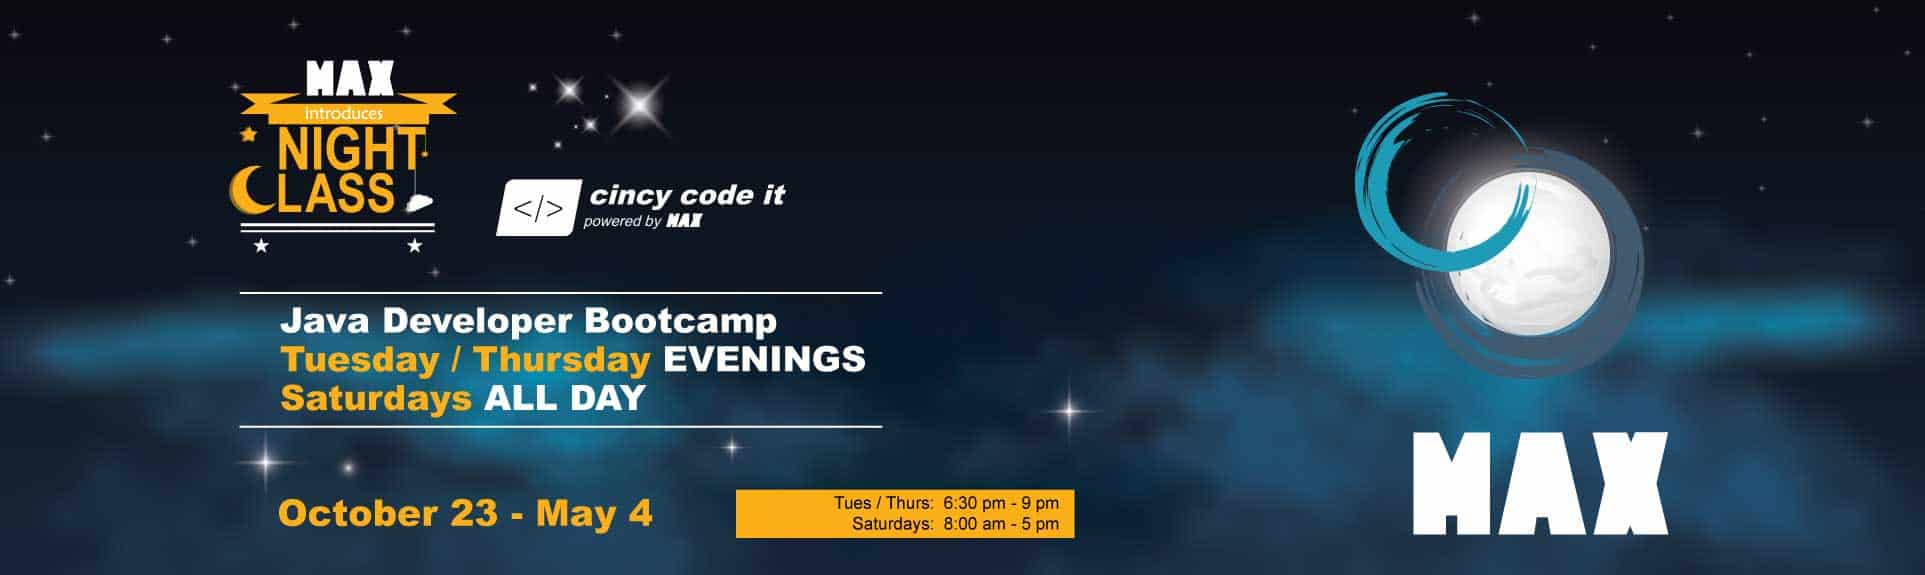 Evening / Weekend Software Development Bootcamp